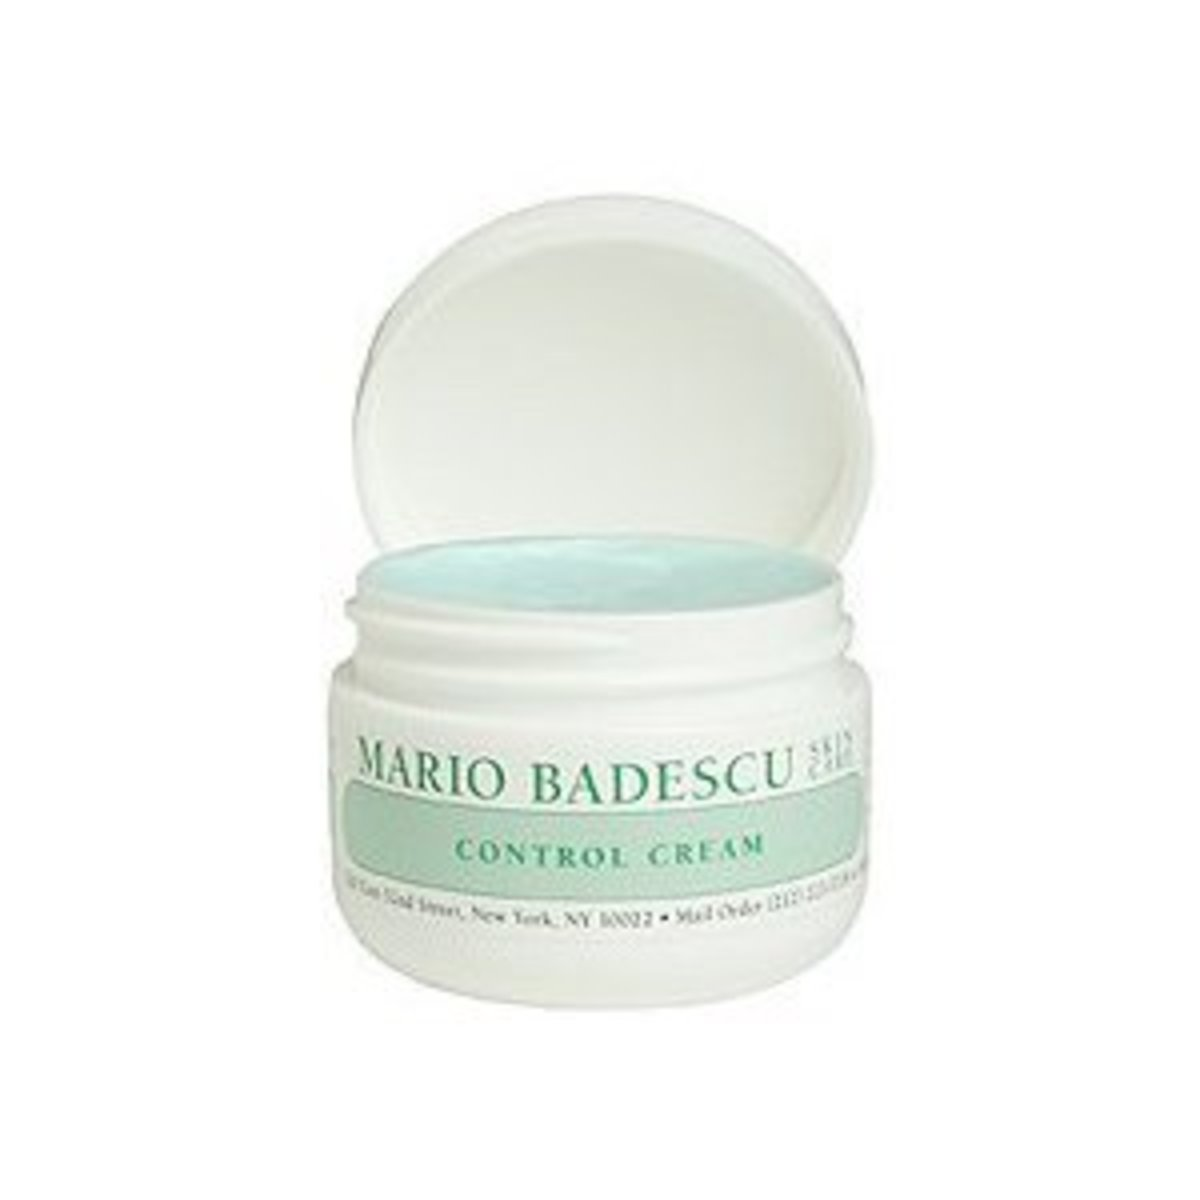 Control Moisturizer For Oily Skin by Mario Badescu